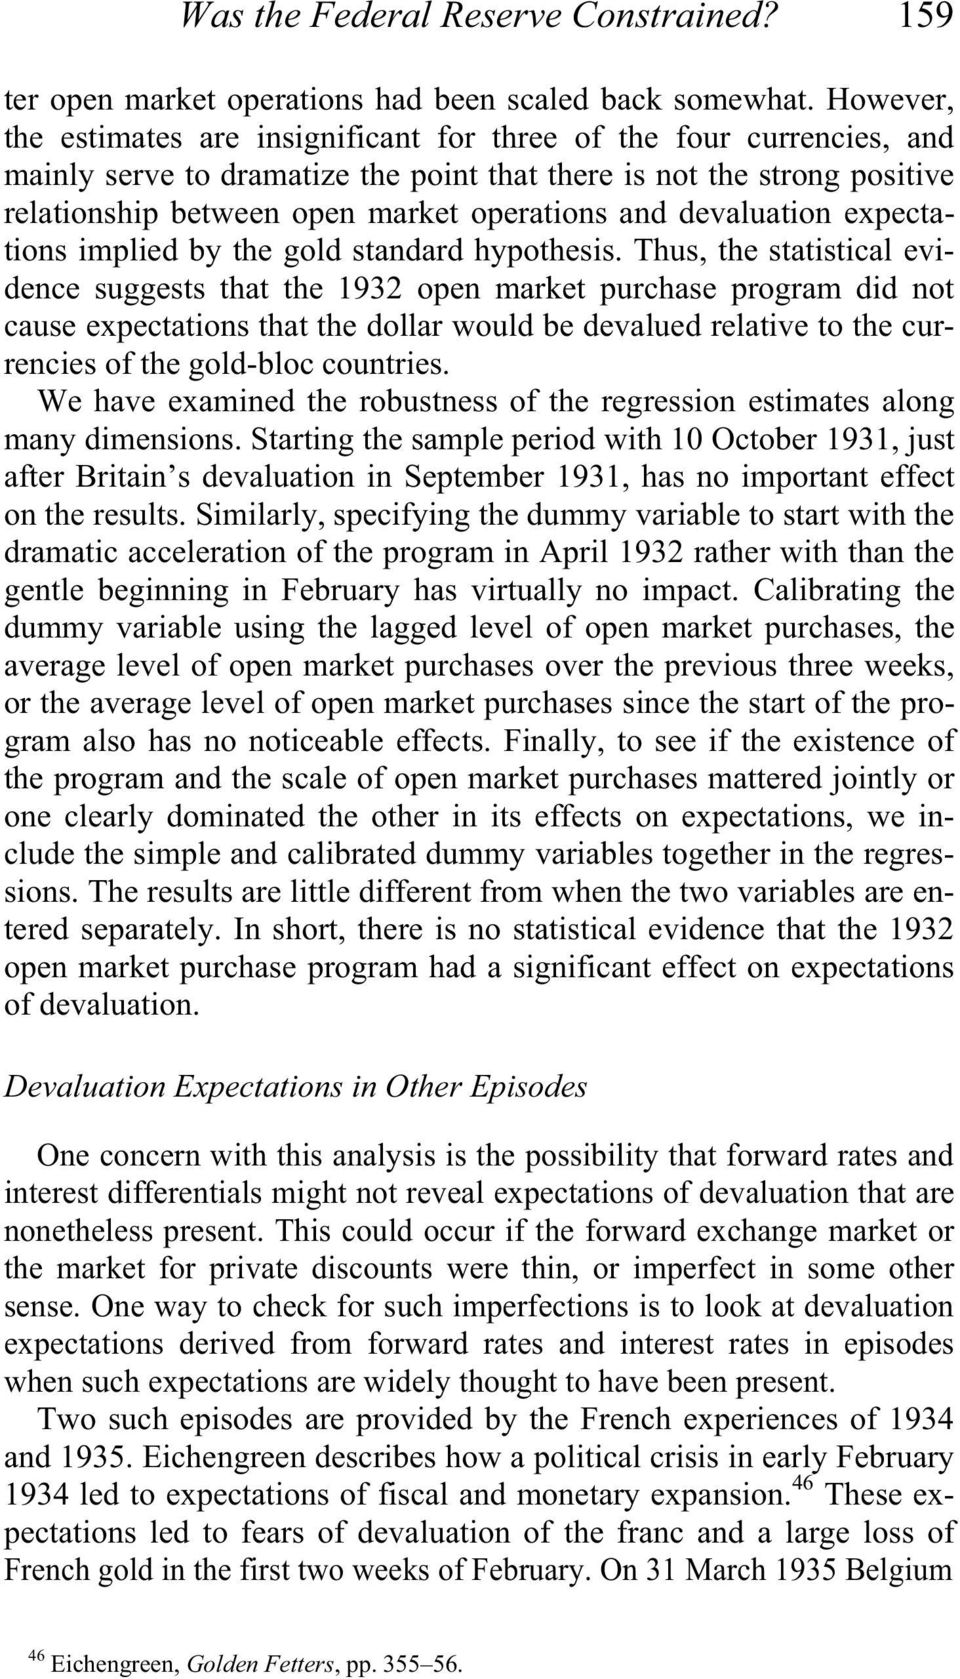 and devaluation expectations implied by the gold standard hypothesis.